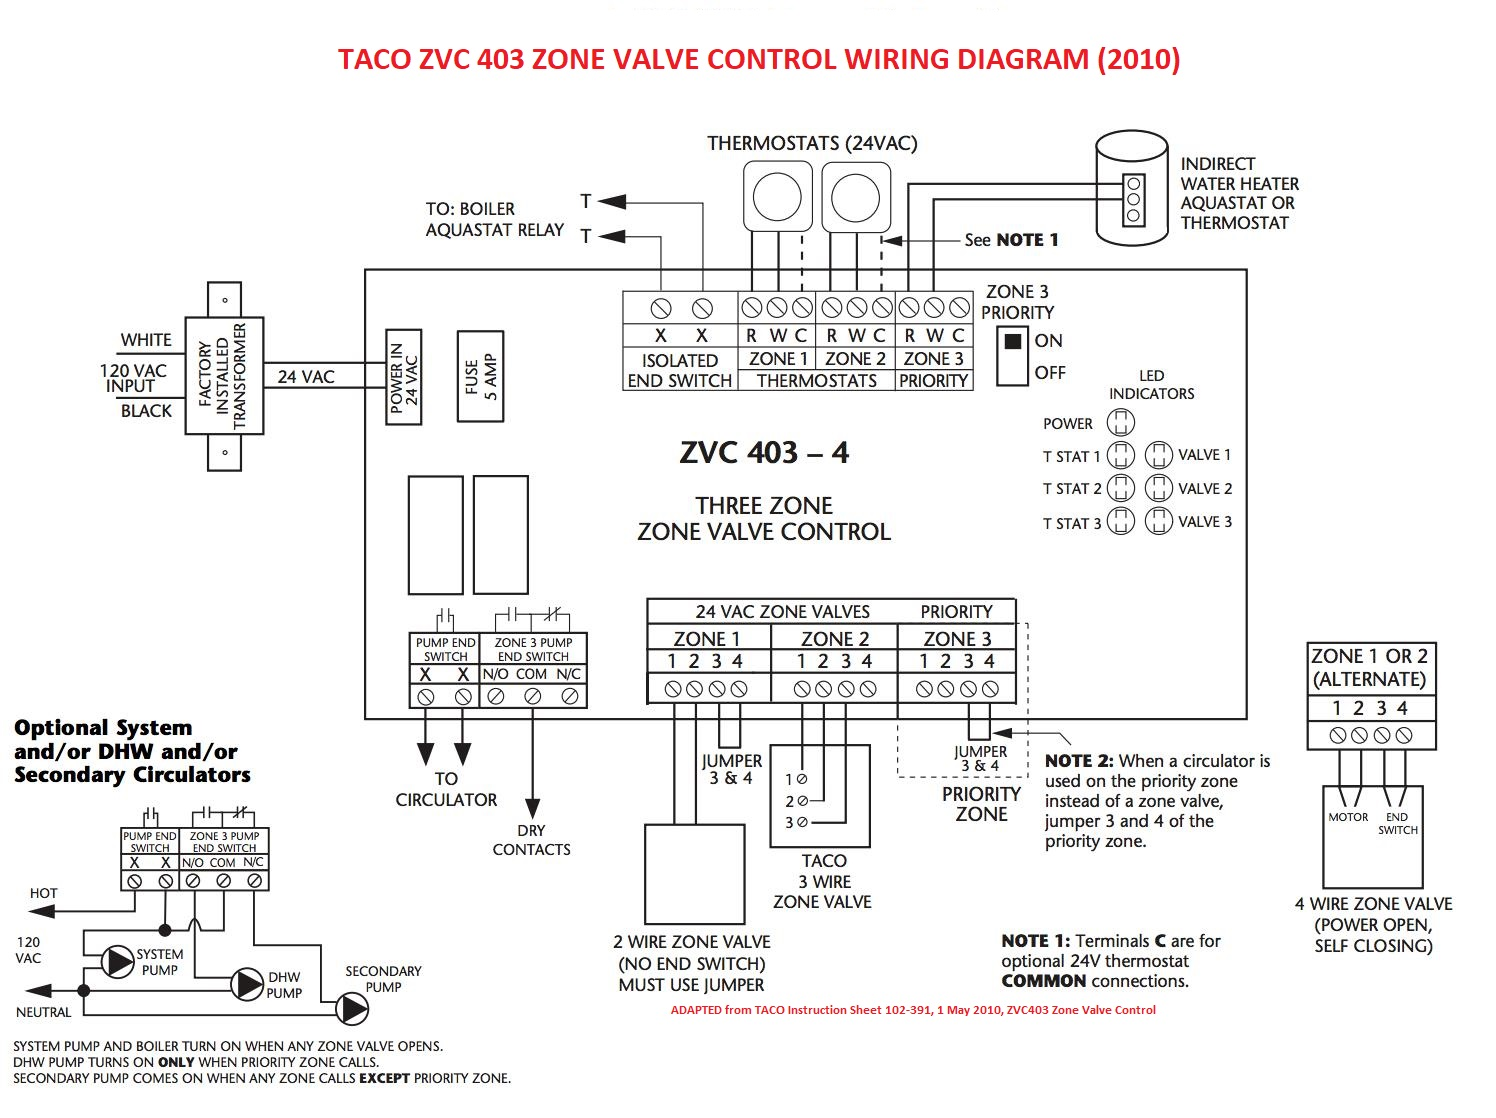 Zone Valve Wiring Installation Instructions Guide To Heating. Taci Zvc493 Wiring Diagram Click To Enlarge At Inspectapedia. Wiring. Rocker Switch Wiring Diagram For Infrared Heater At Scoala.co